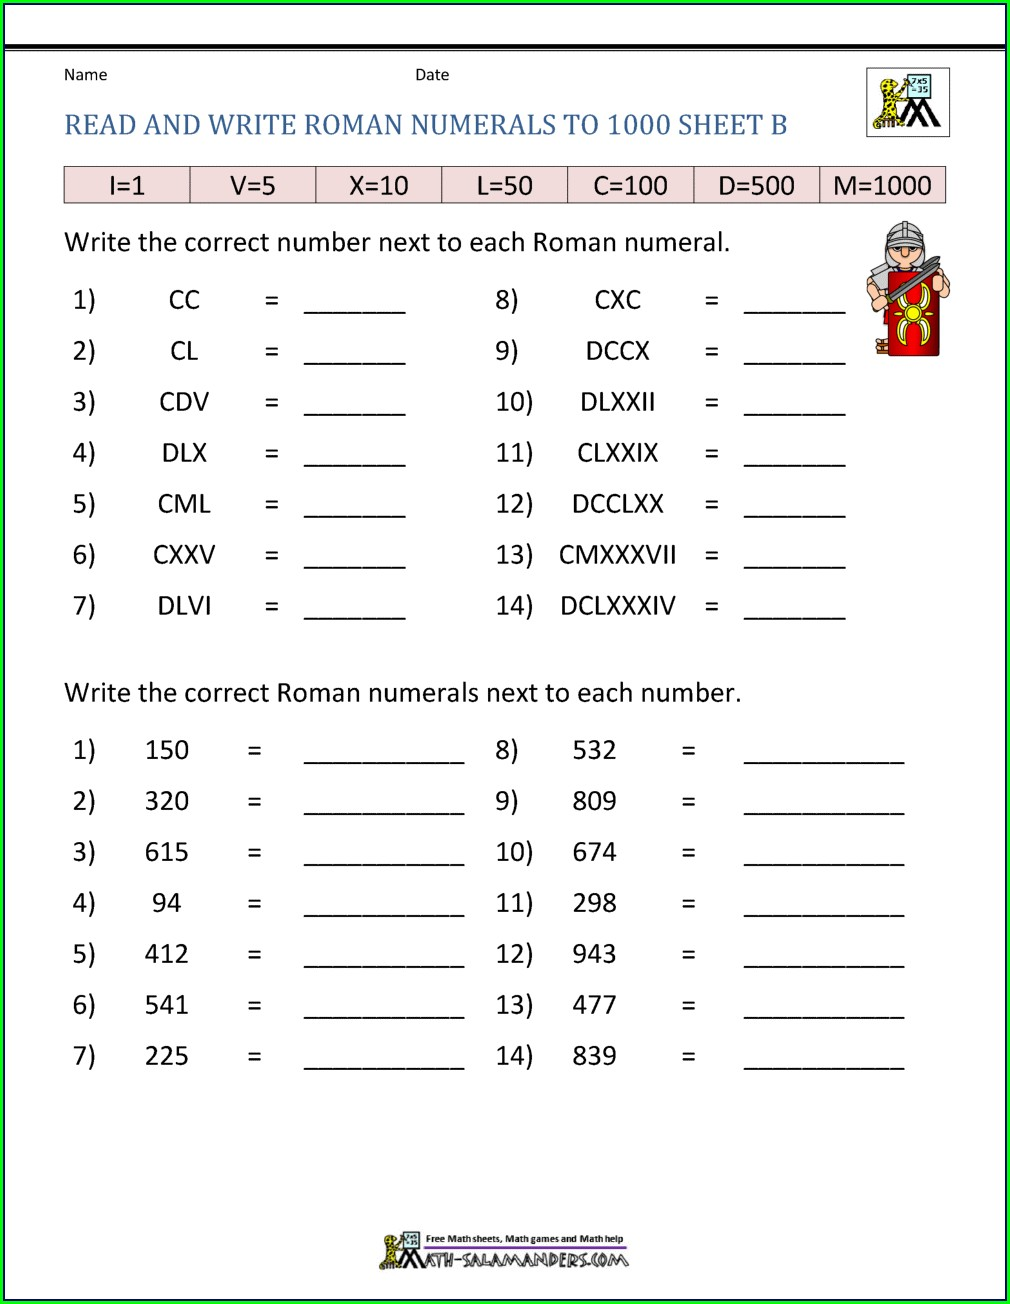 Roman Numerals Worksheets For Class 4